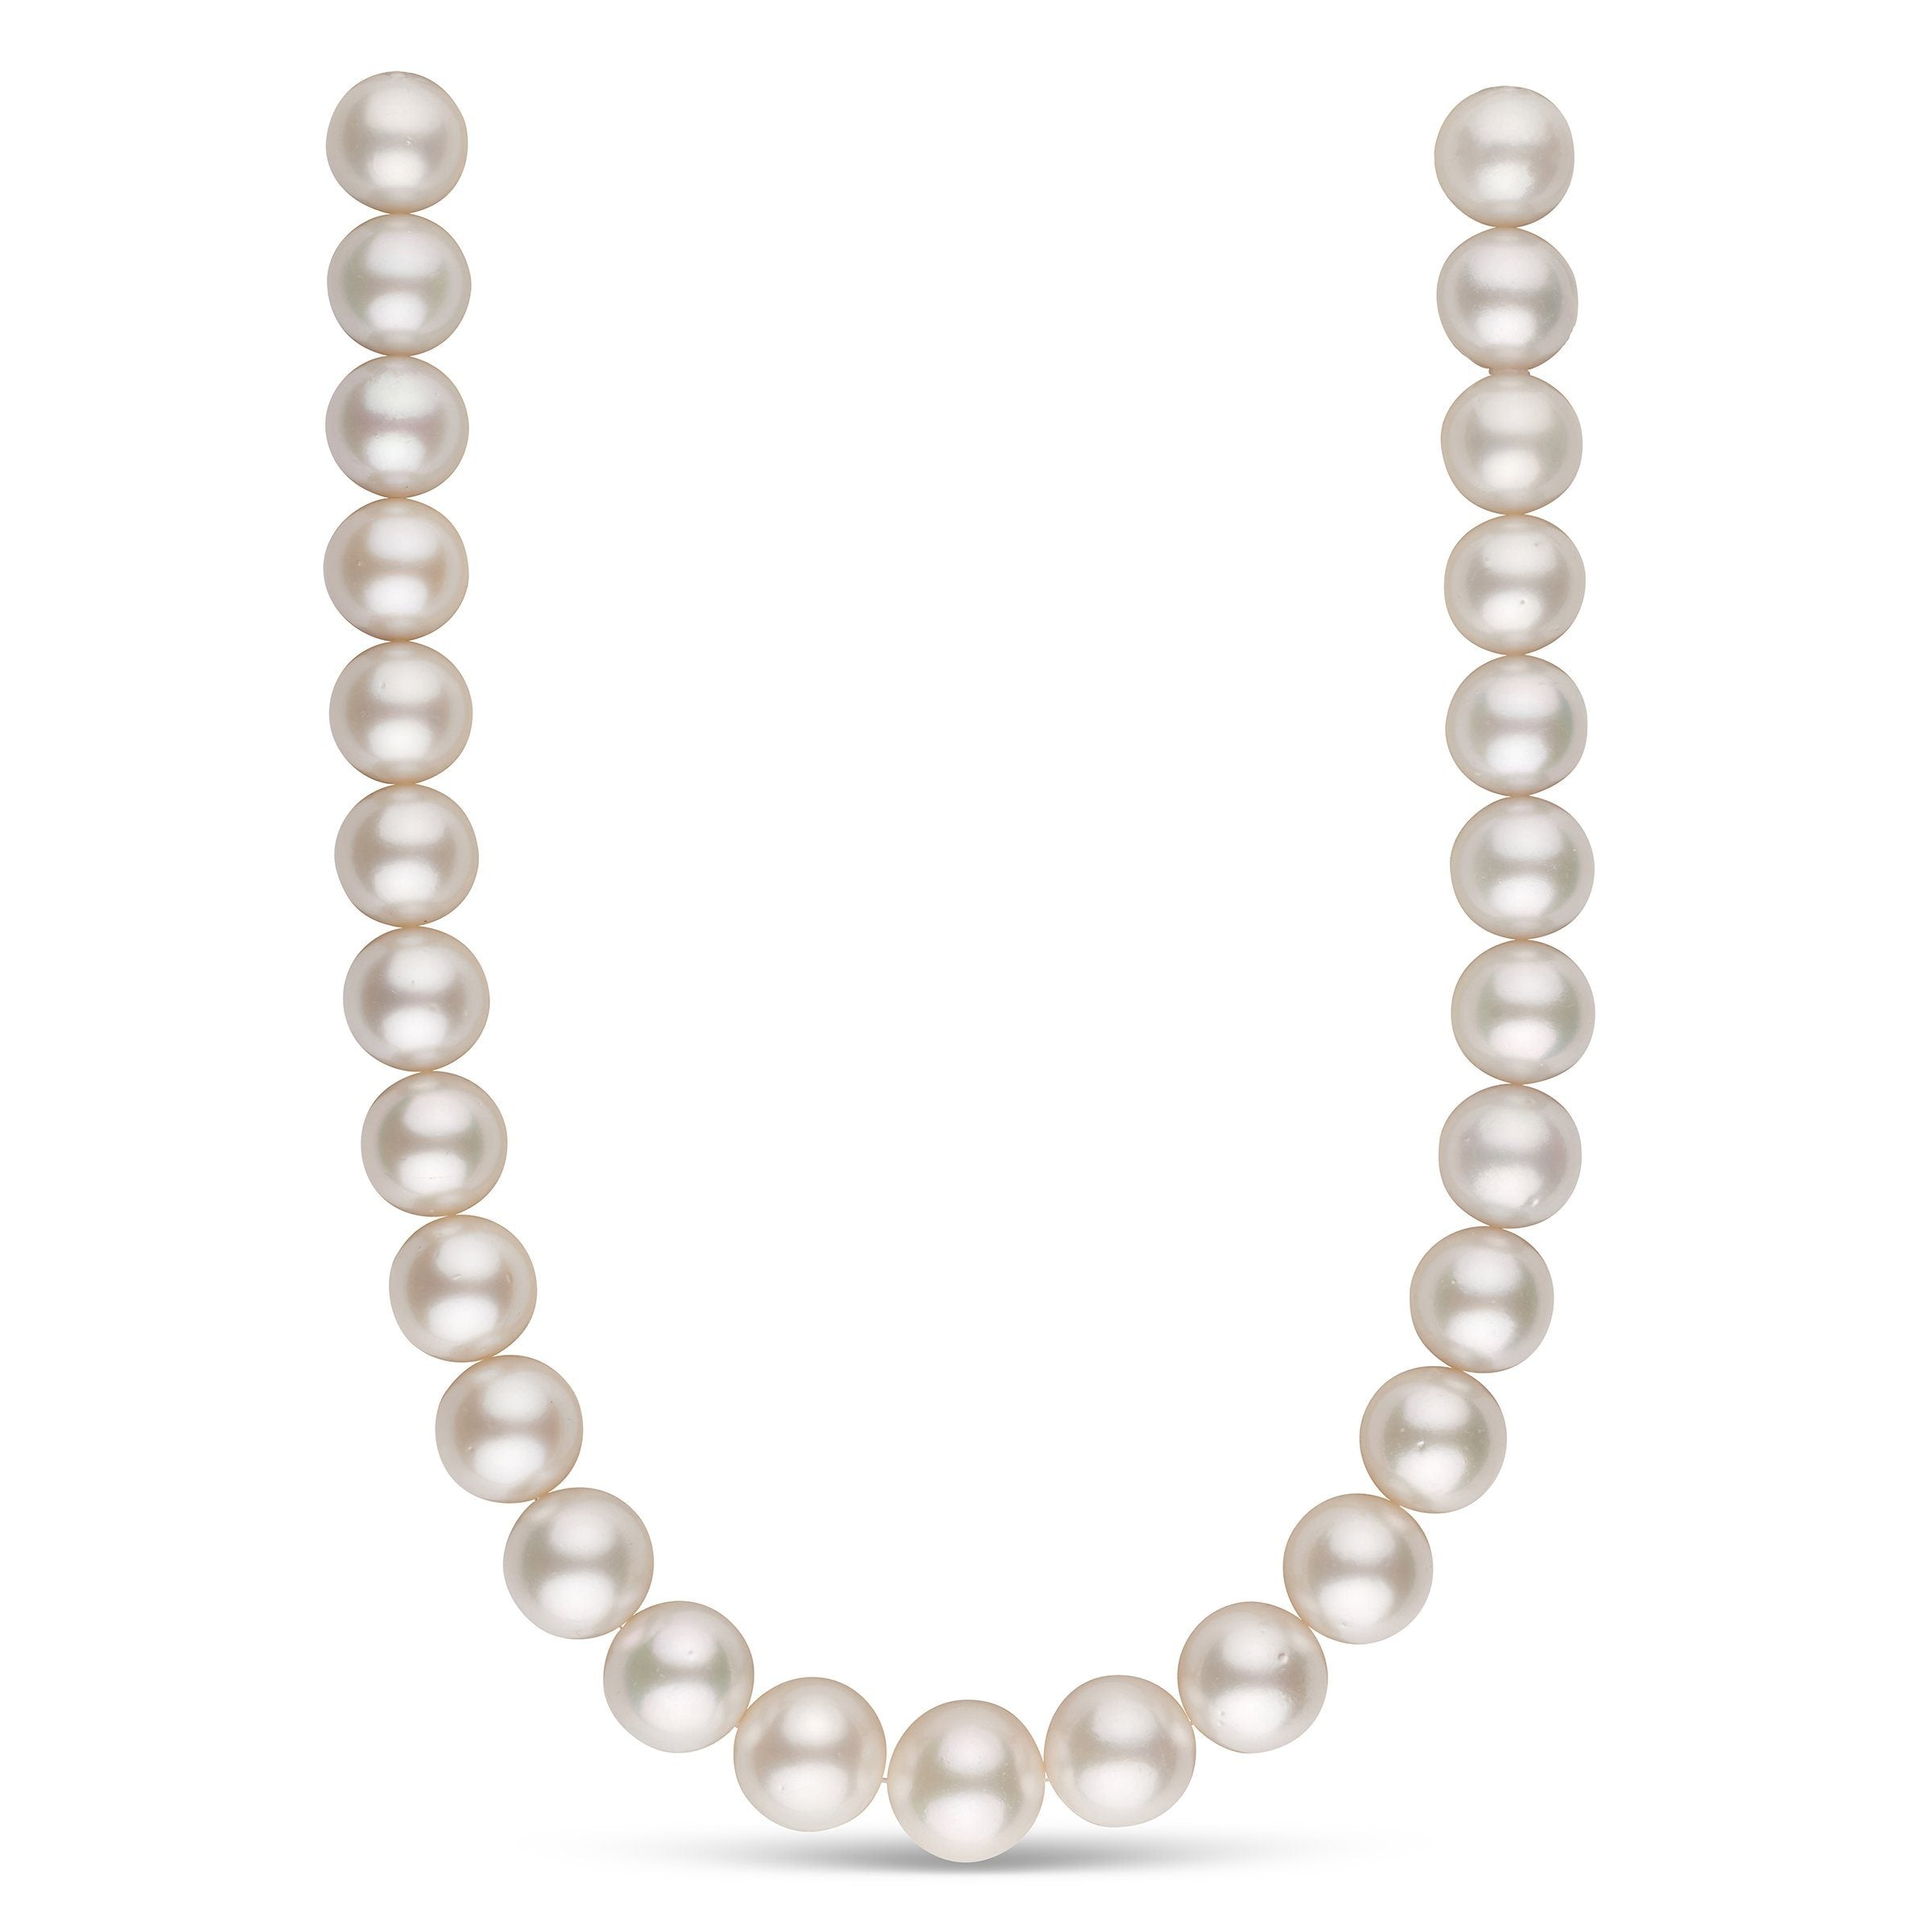 15.0-16.9 mm AA White South Sea Round Pearl Necklace